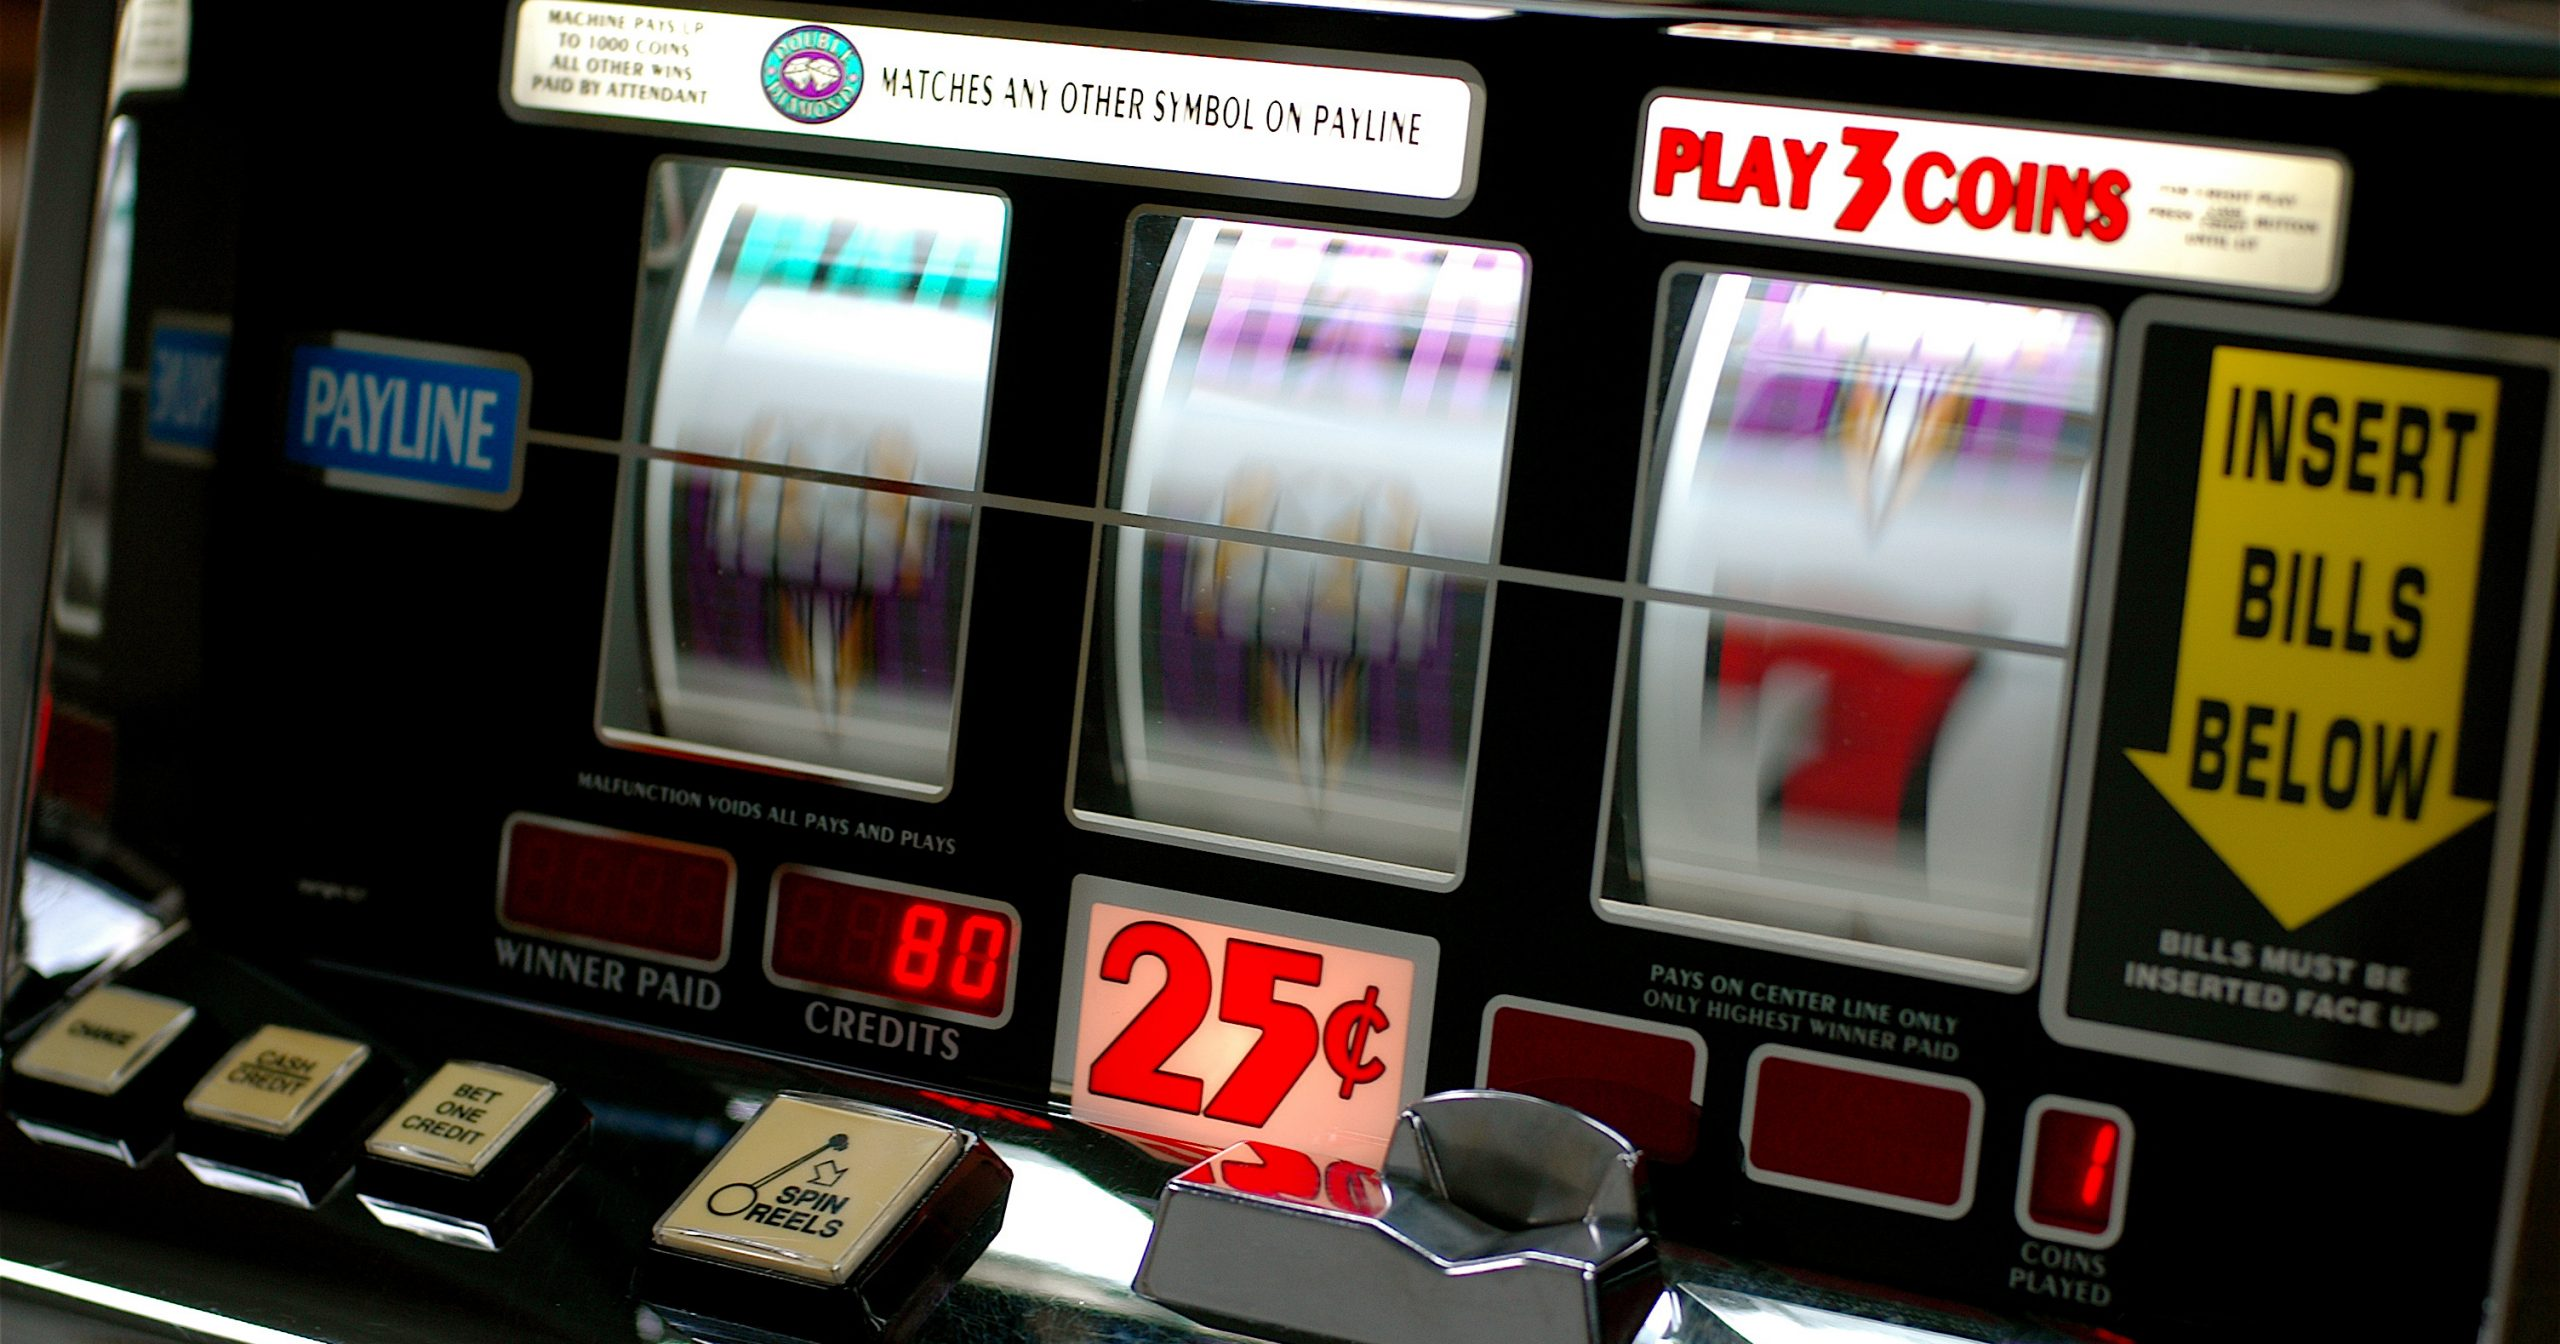 What Are Your Odds Of Winning The Slots Jackpot? - Vulcan Post